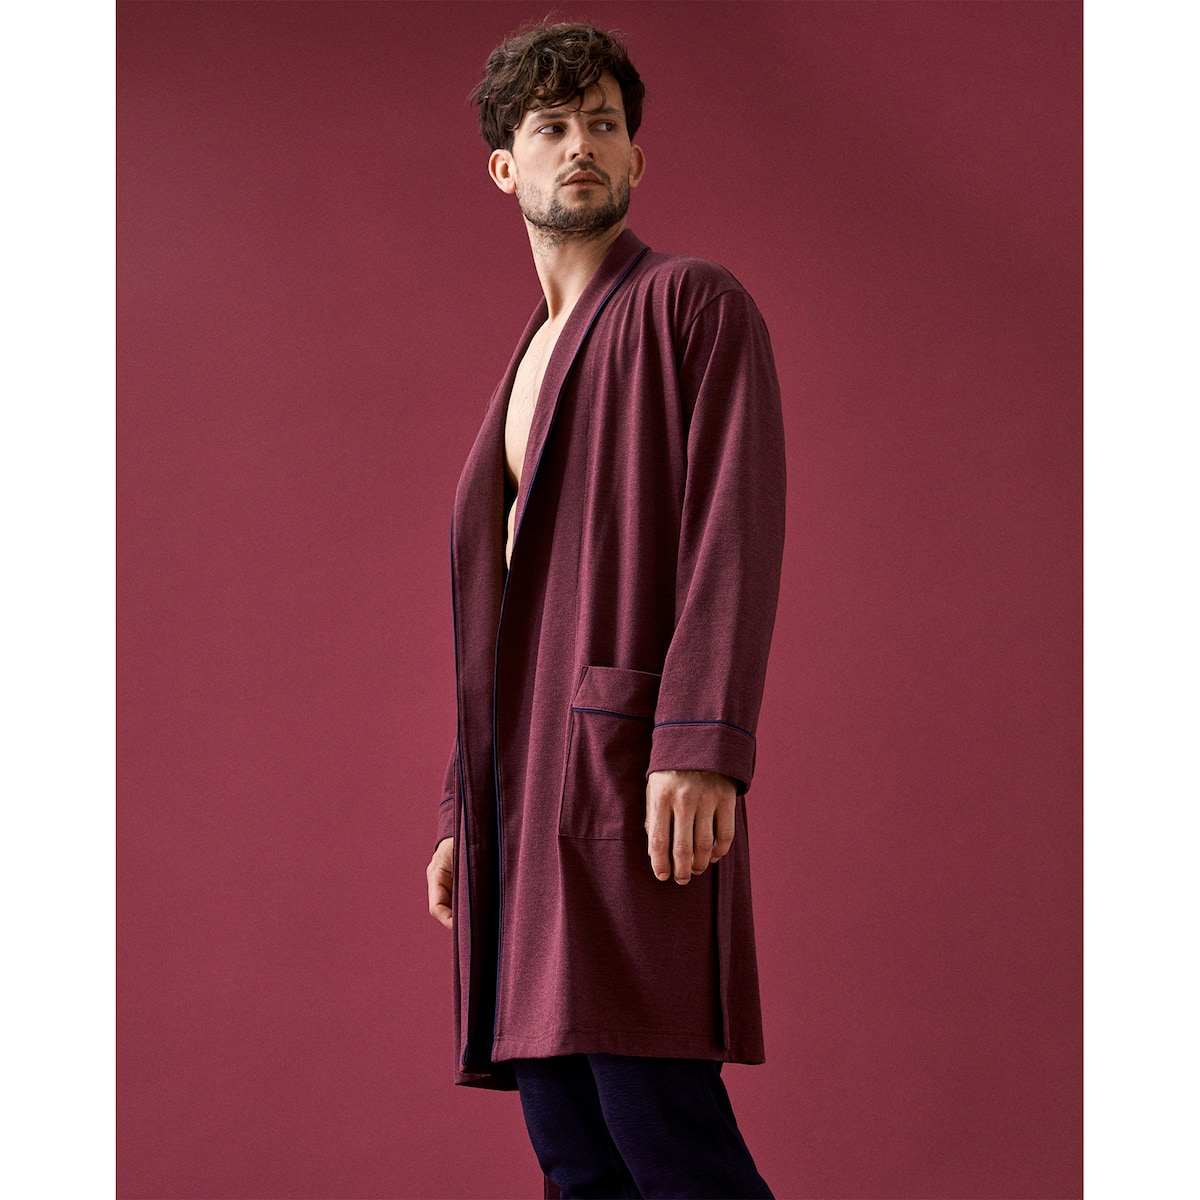 DRESSING GOWN WITH BORDER - MEN\'S LOUNGEWEAR - LOUNGEWEAR | Zara ...